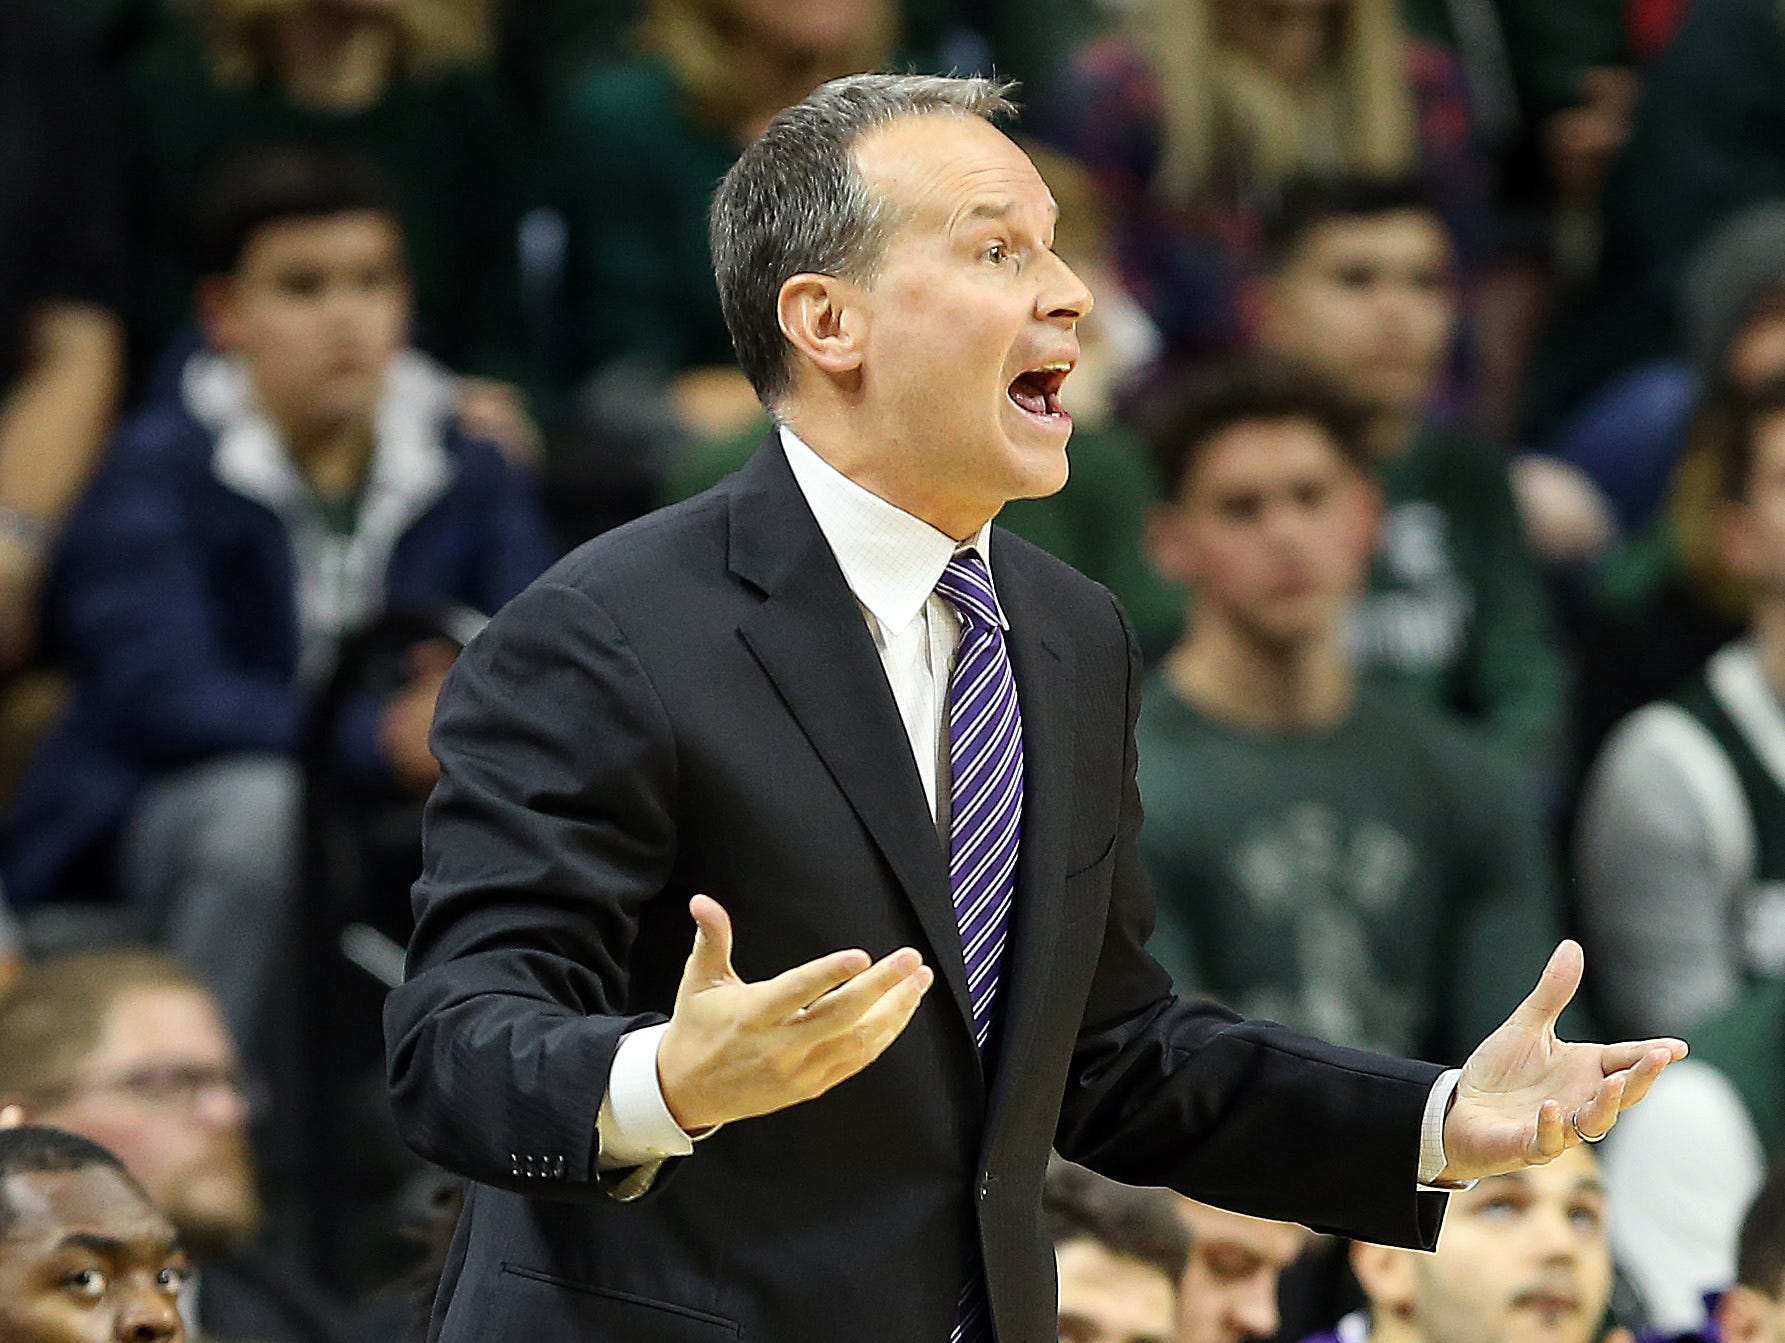 Jan 2, 2019; East Lansing, MI, USA; Northwestern Wildcats head coach Chris Collins reacts during the first half of a game against the Michigan State Spartans at the Breslin Center. Mandatory Credit: Mike Carter-USA TODAY Sports